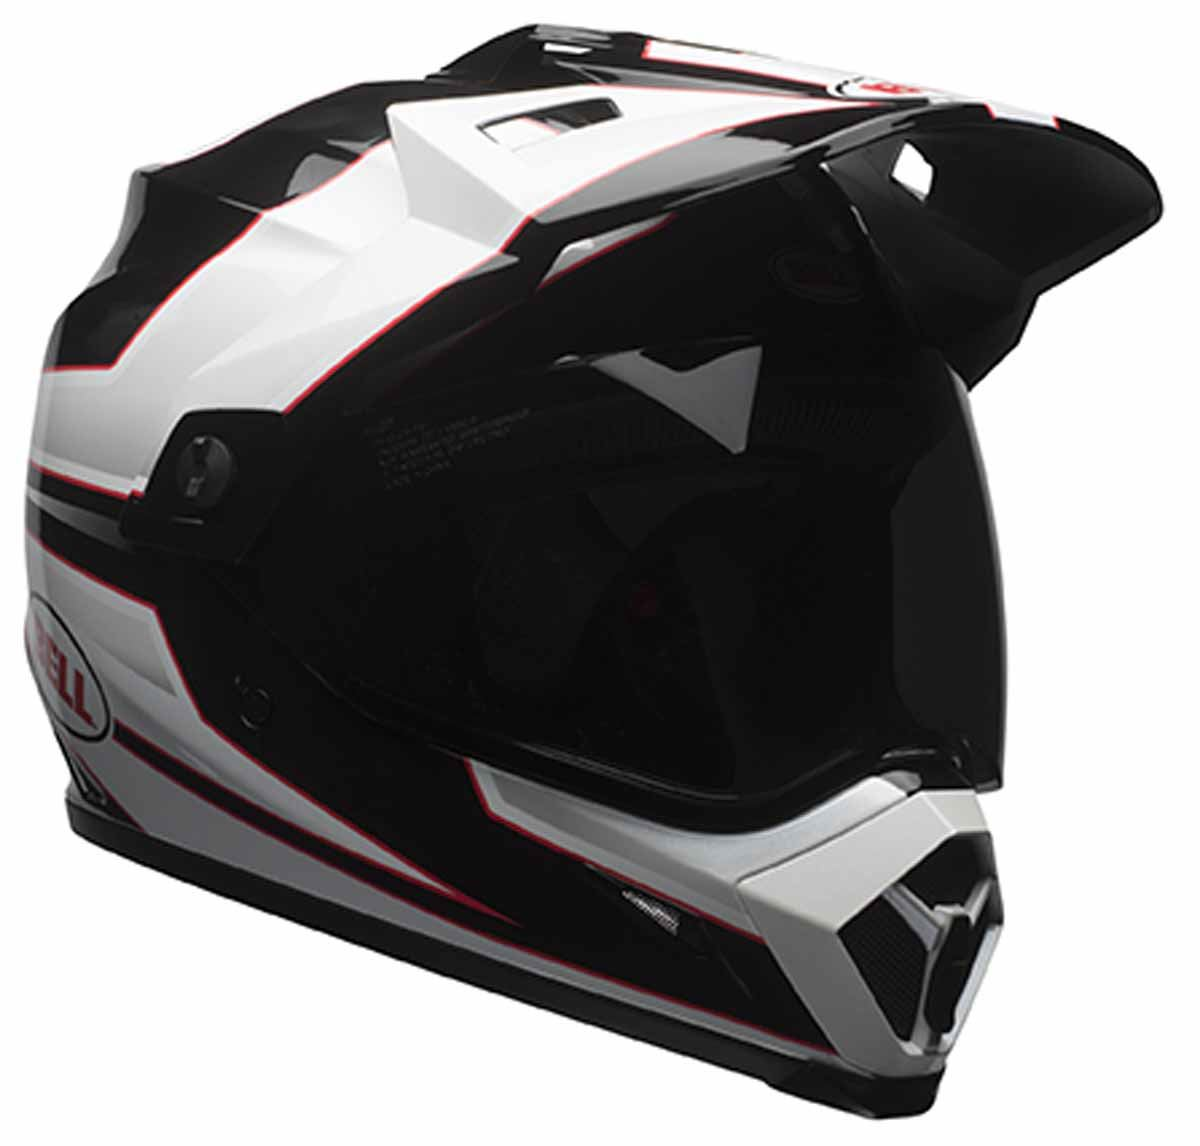 bell mx 9 adv helmet advernture dual sport dot washable anti bacterial liner ebay. Black Bedroom Furniture Sets. Home Design Ideas